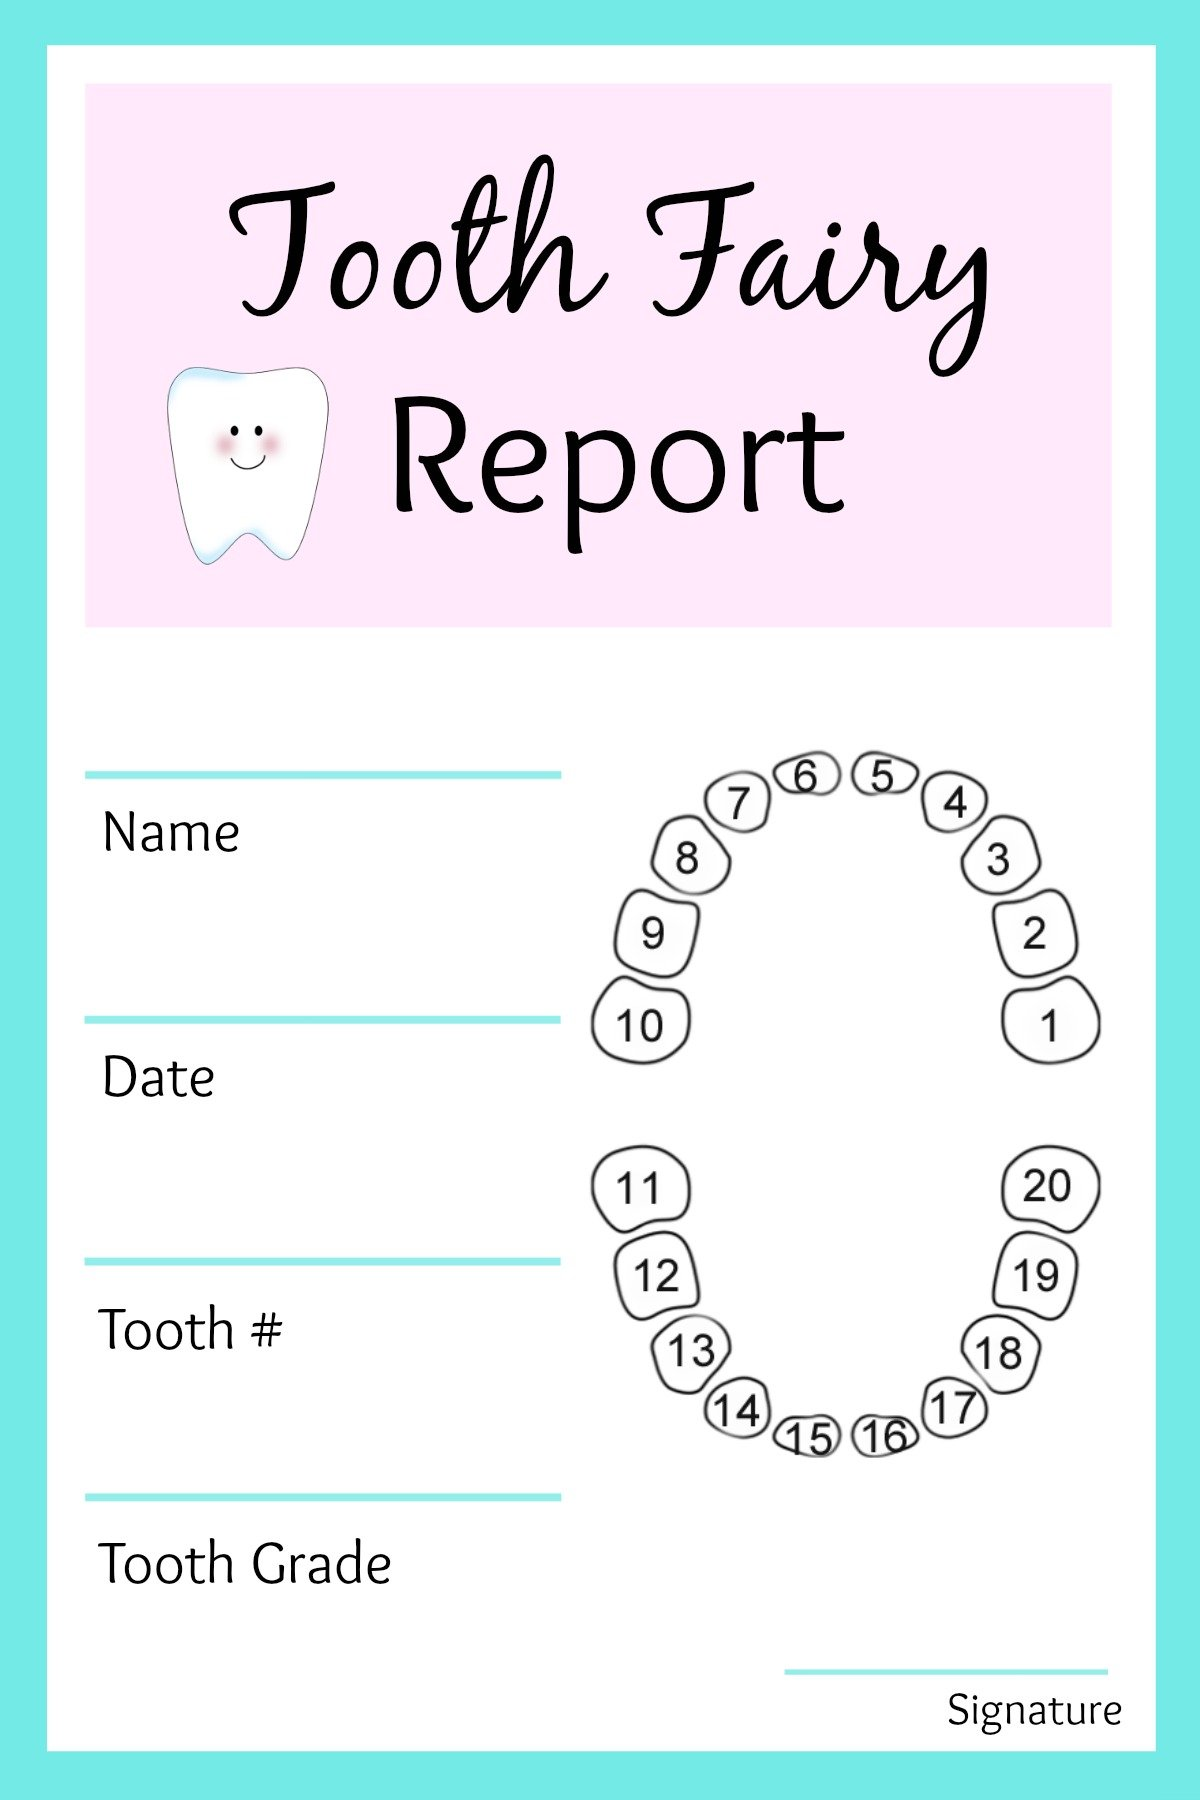 tooth fairy card  Tooth Fairy Ideas And Free Printables: Tooth Fairy Letterhead Report ...